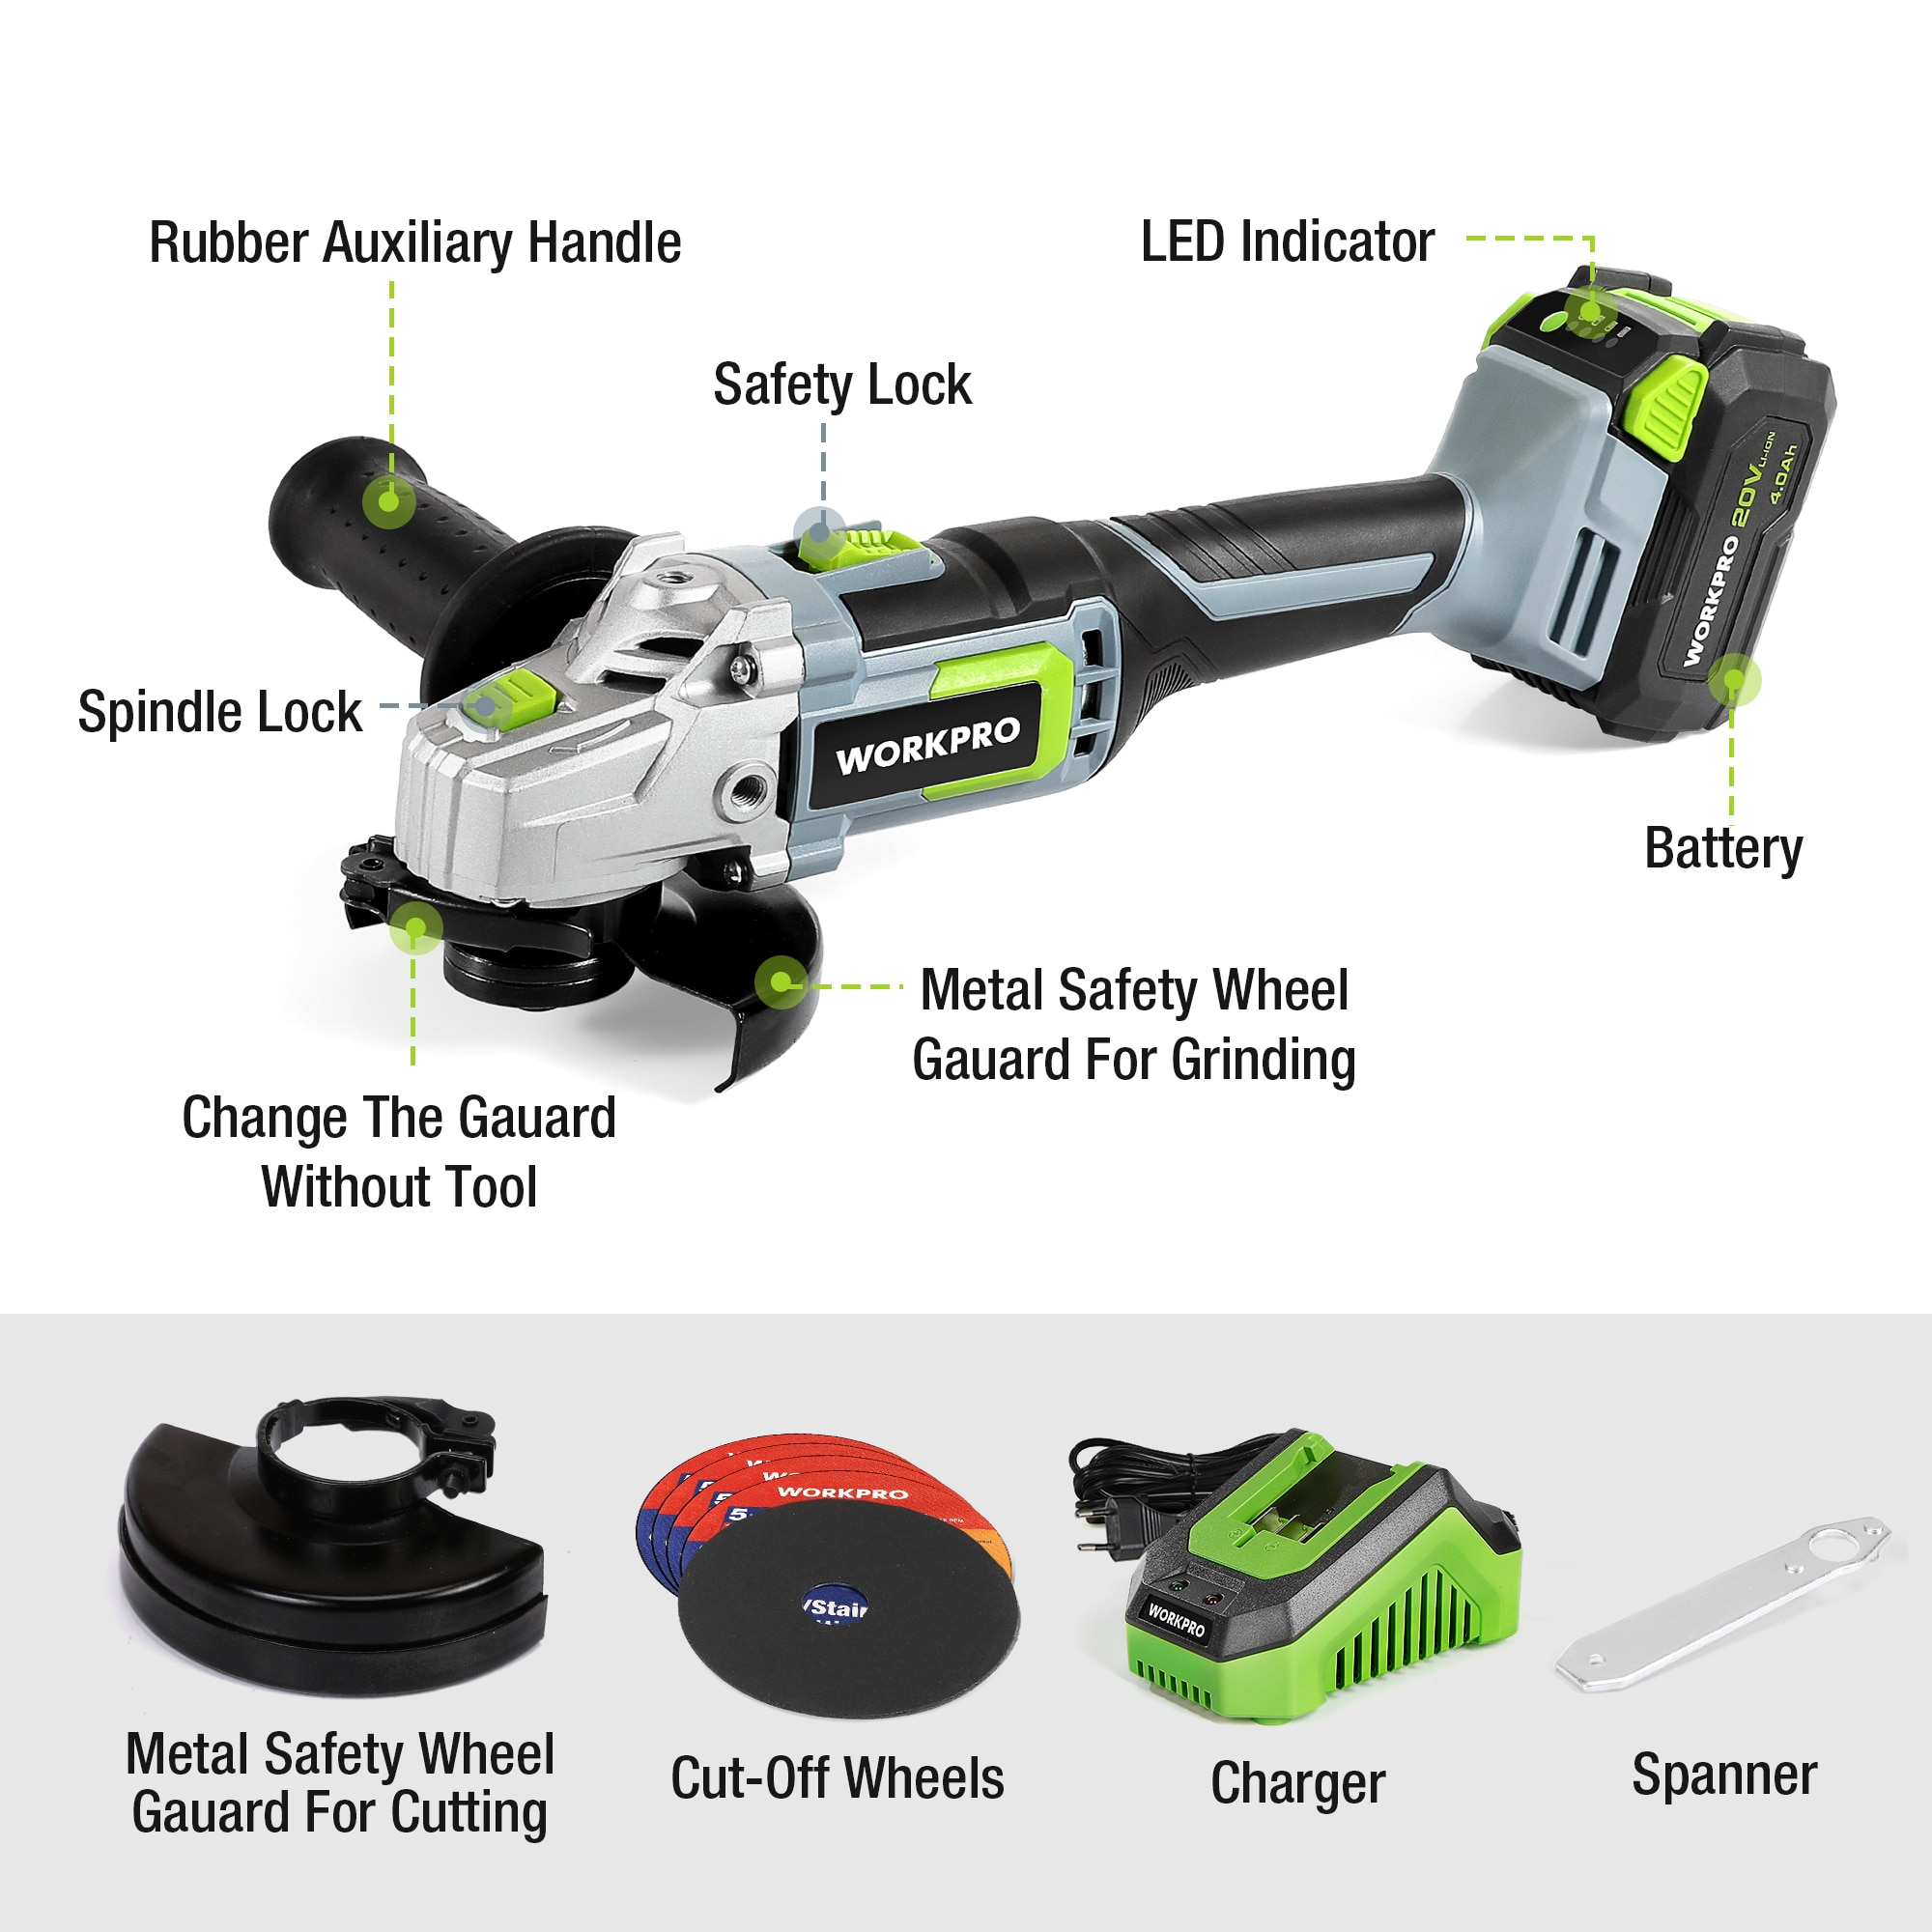 WORKPRO 20V Lithium-ion Cordless Angle Grinder 2